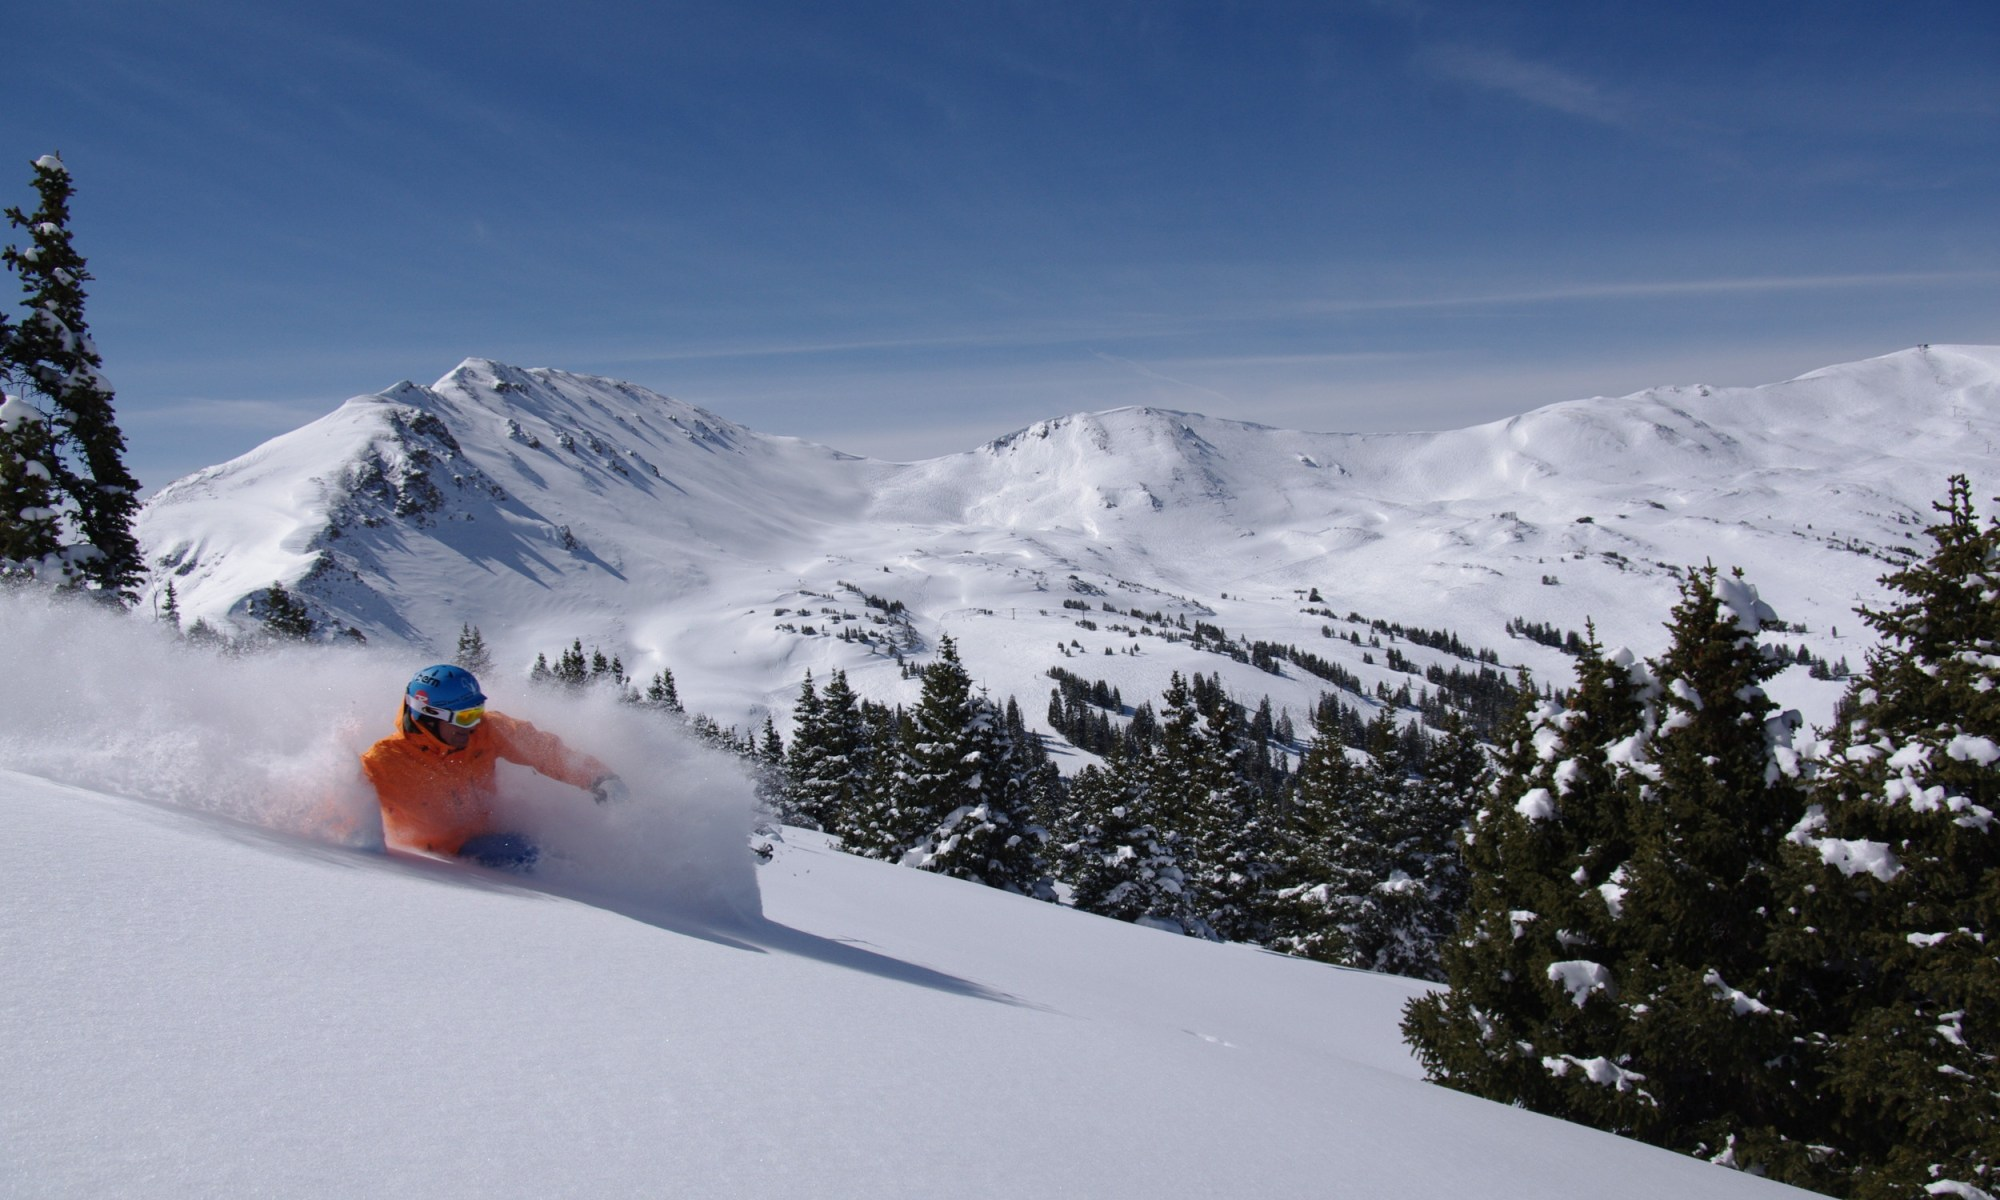 Loveland Ski Area - Powder Alliance. Several new resorts join the Powder Alliance for 2018-19 ski season